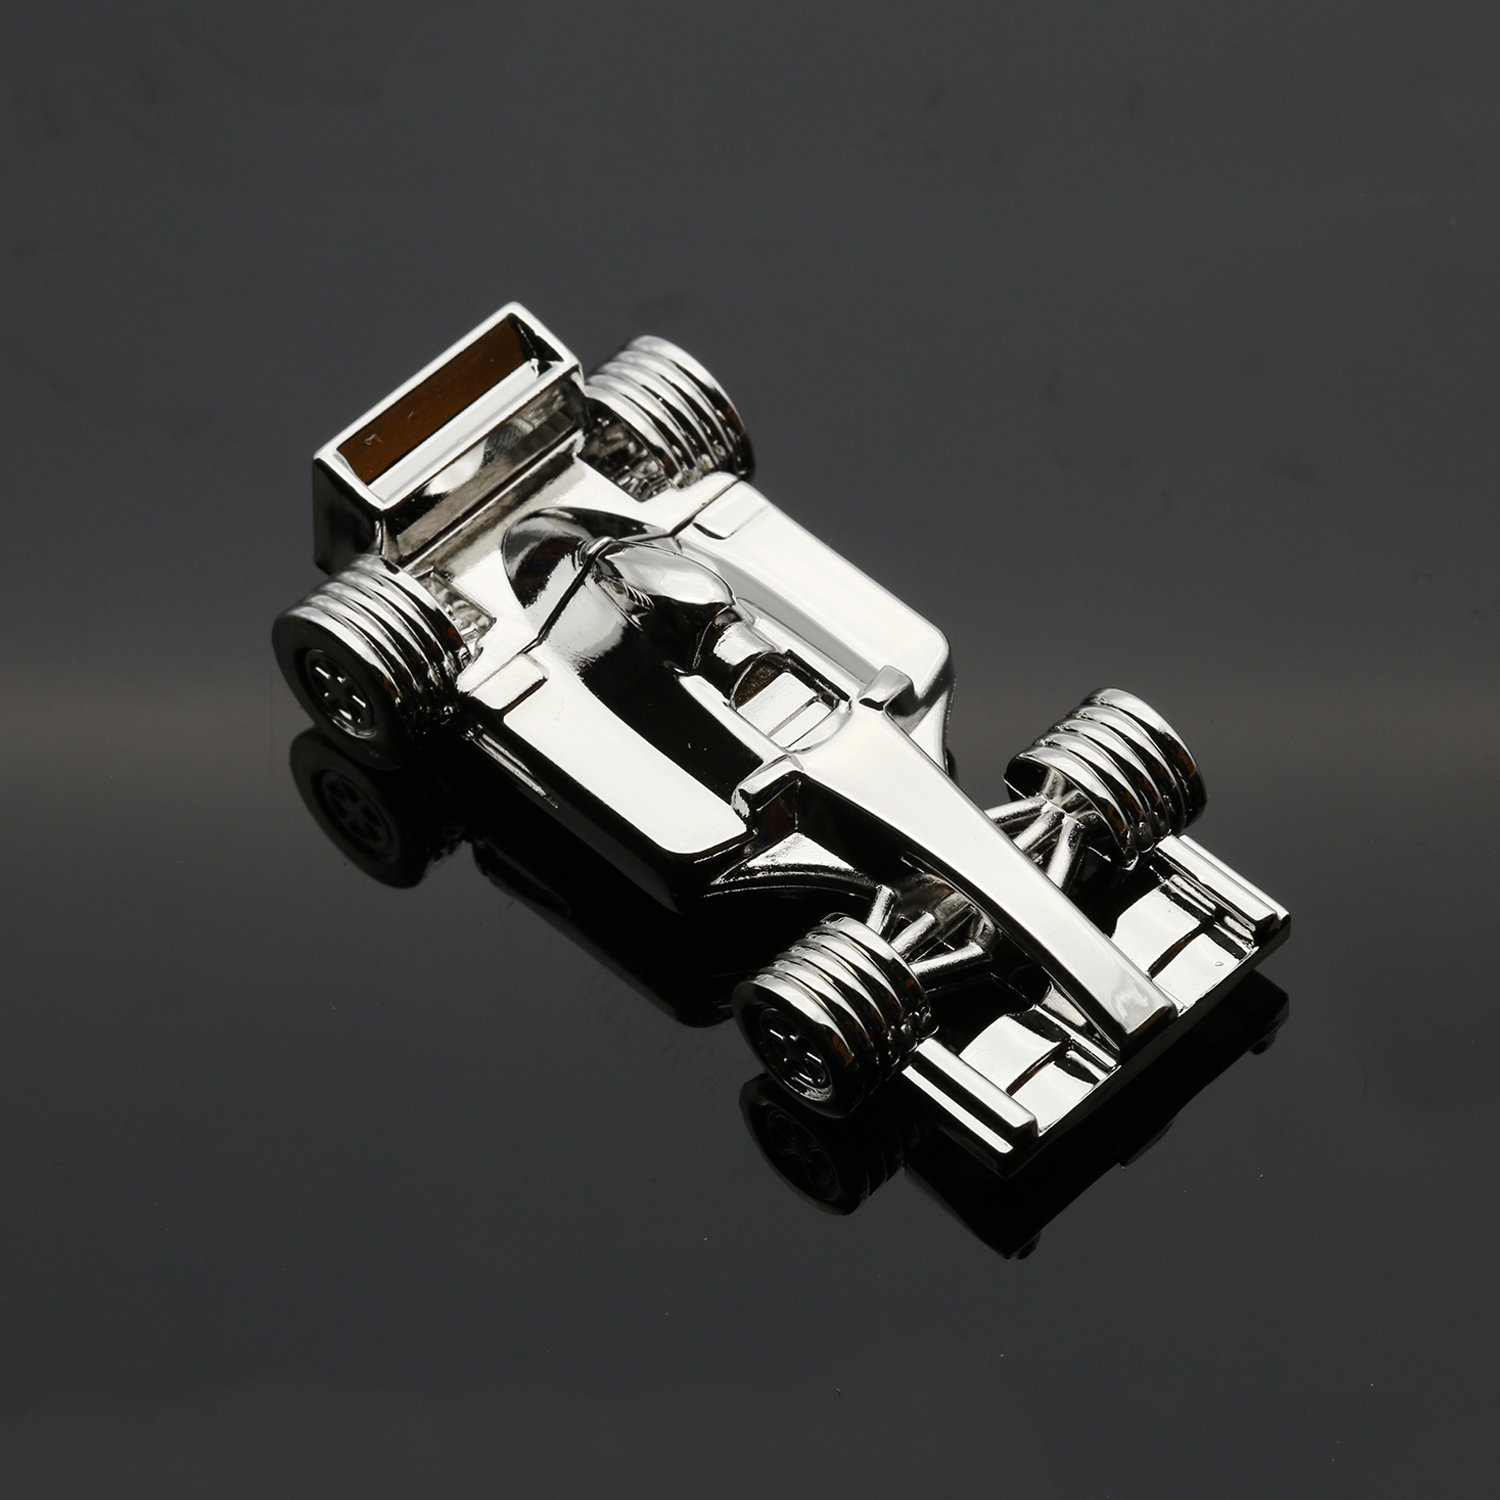 Sunworld 16GB Memory Stick Metal F1 Racing Car USB2.0 Flash Drive